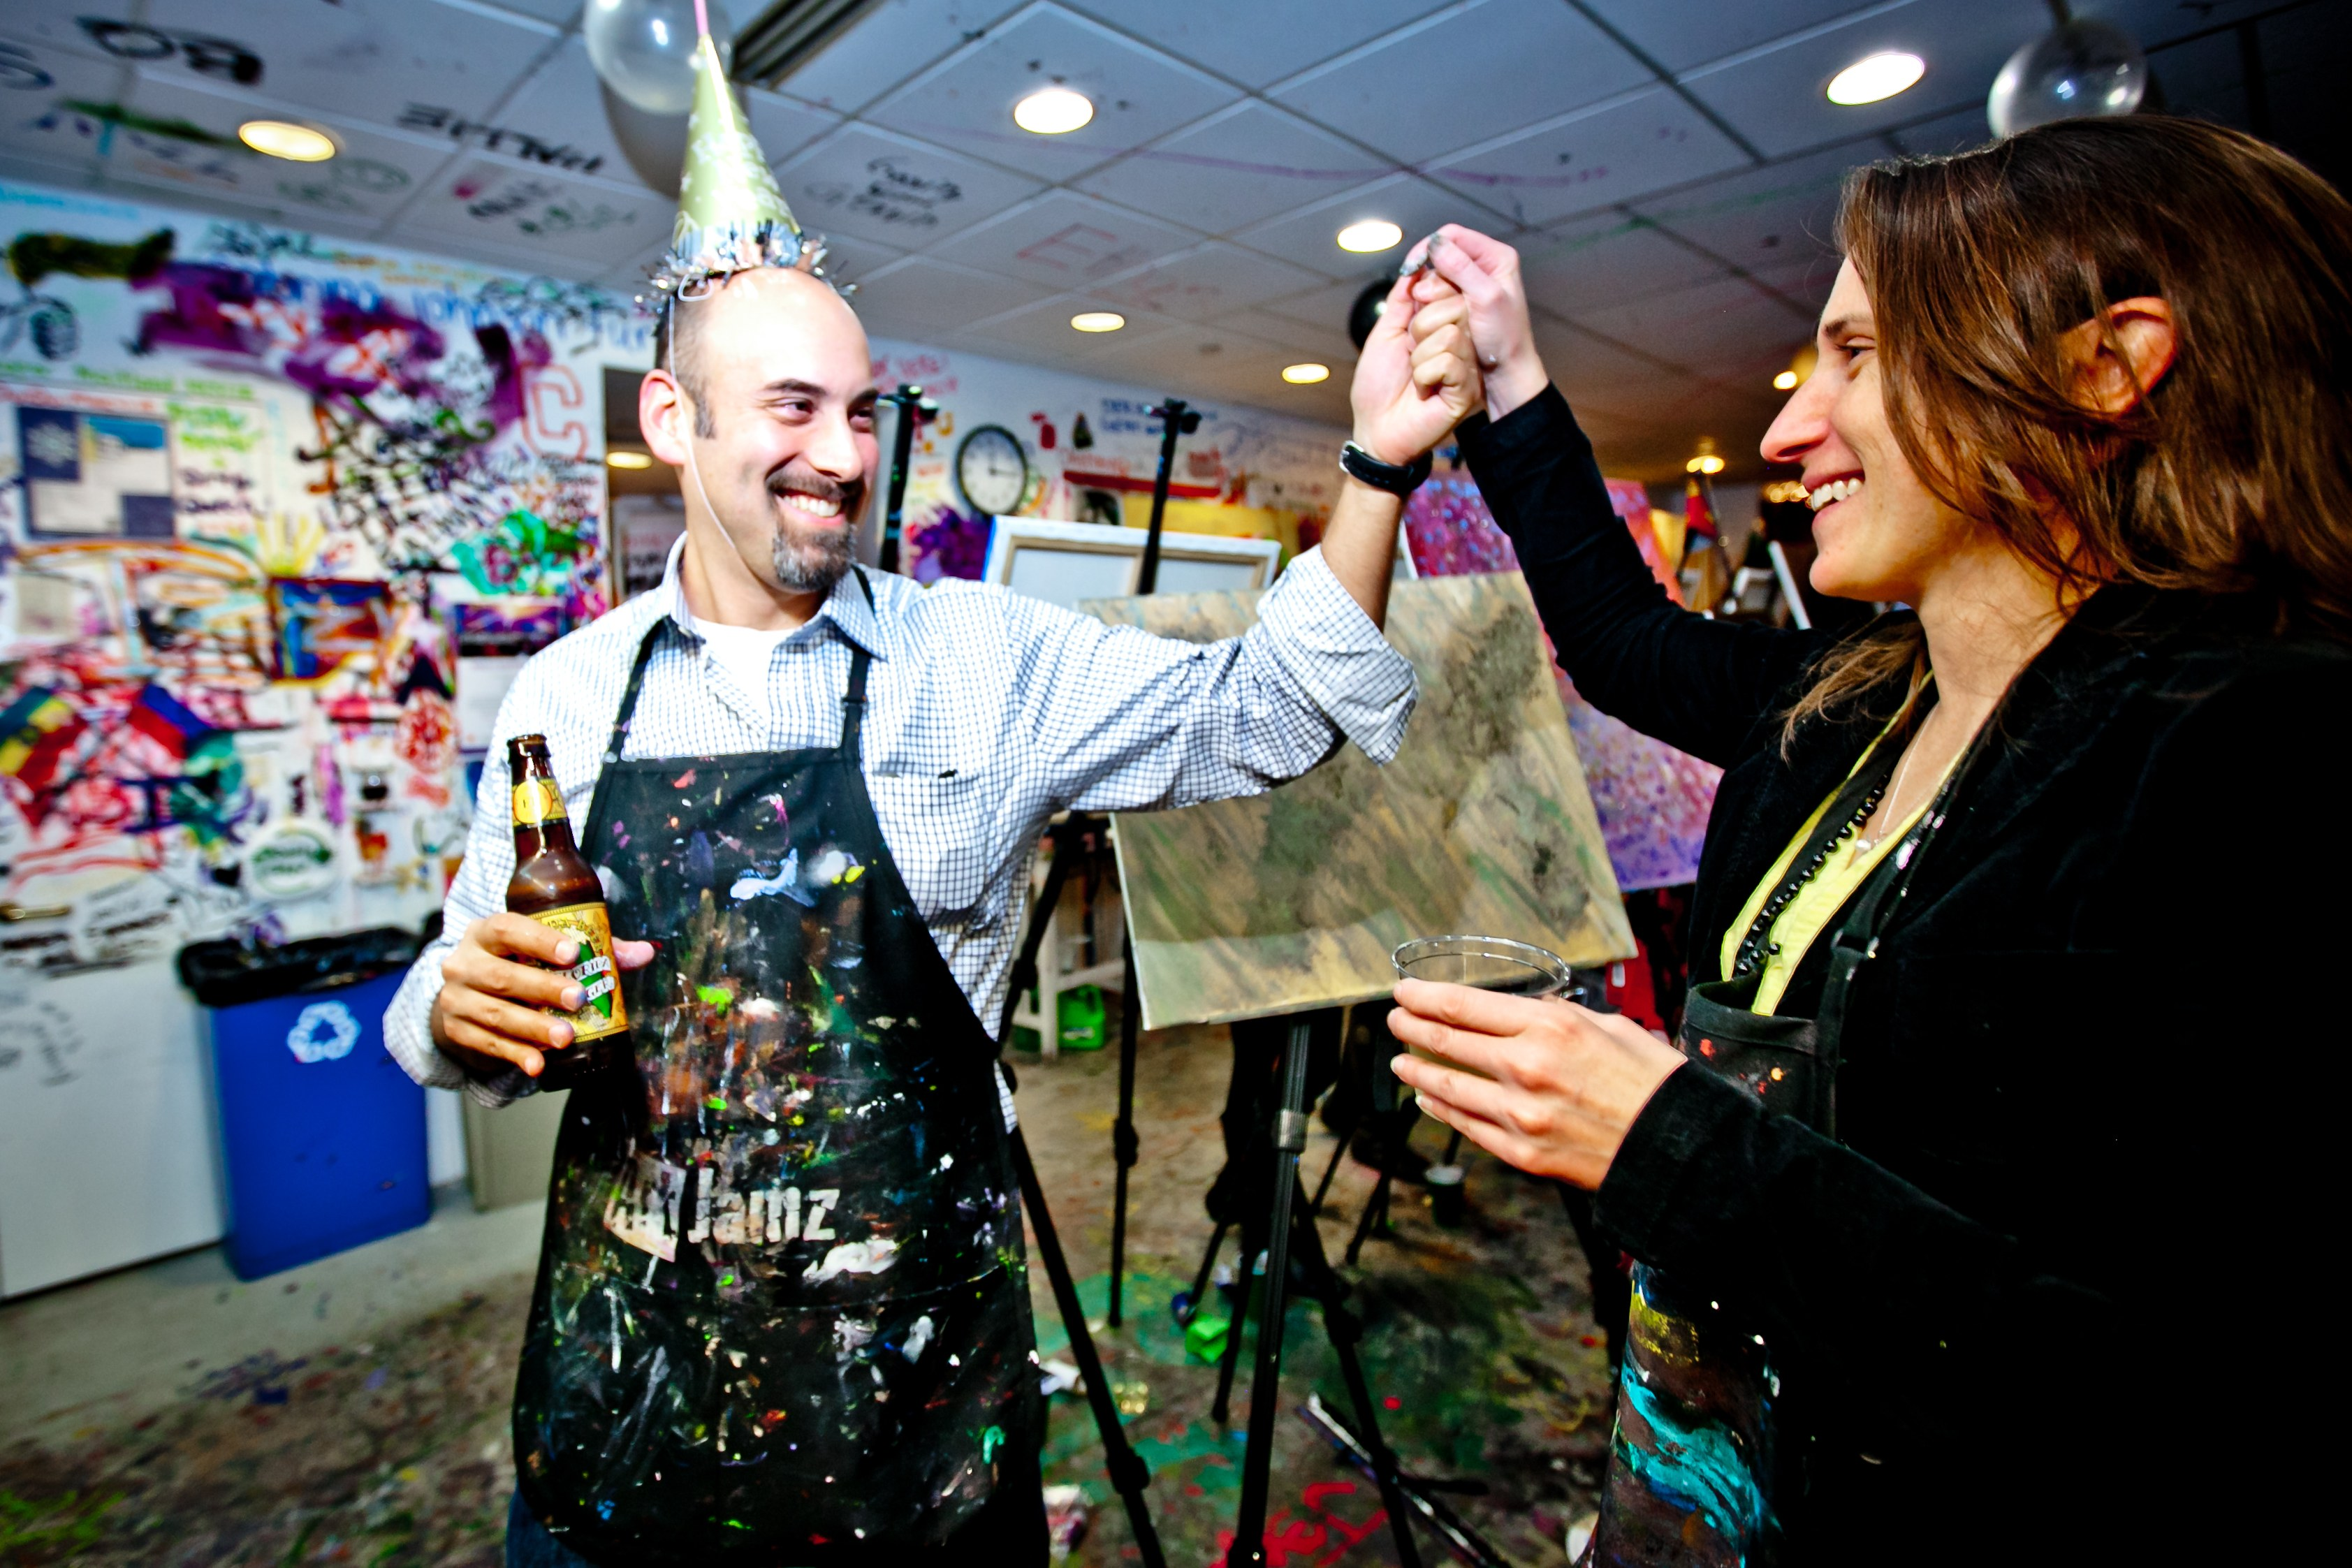 Upcoming Guided Art Classes and Special Events at ArtJamz